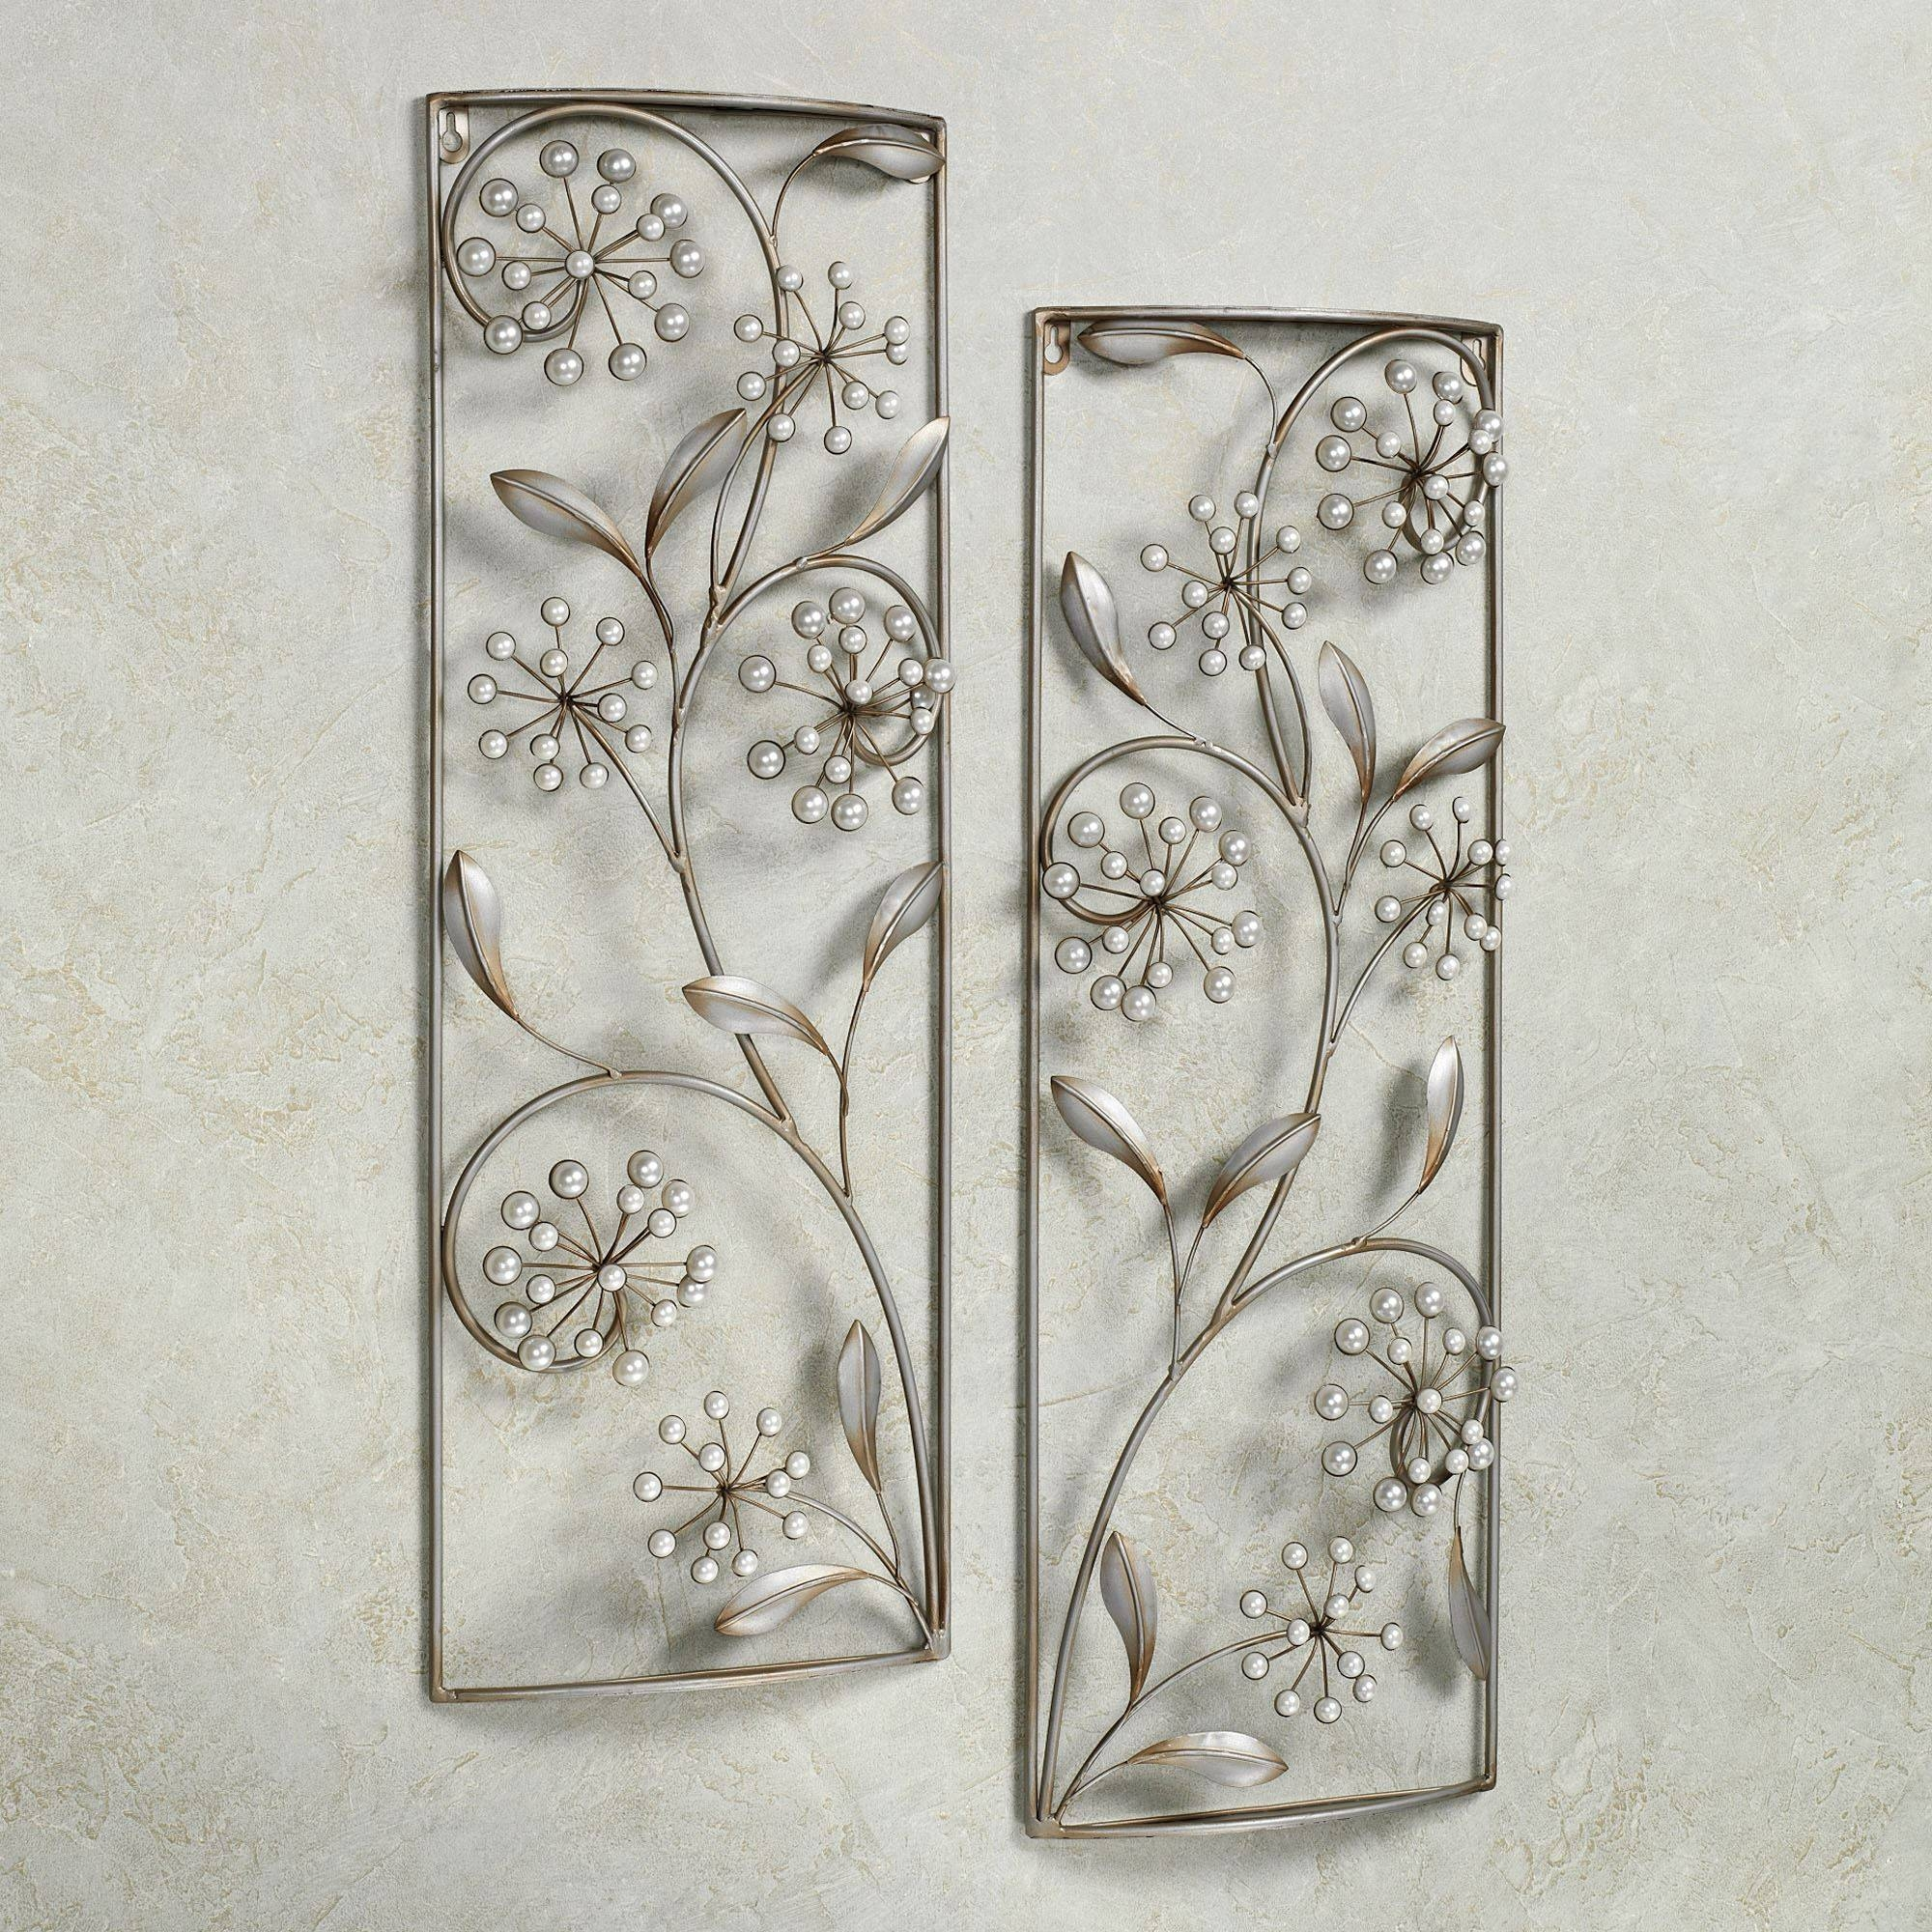 Superb Metallic Wall Decor 123 Decorative Metal Letters Wall Art With  Regard To Most Current Flower